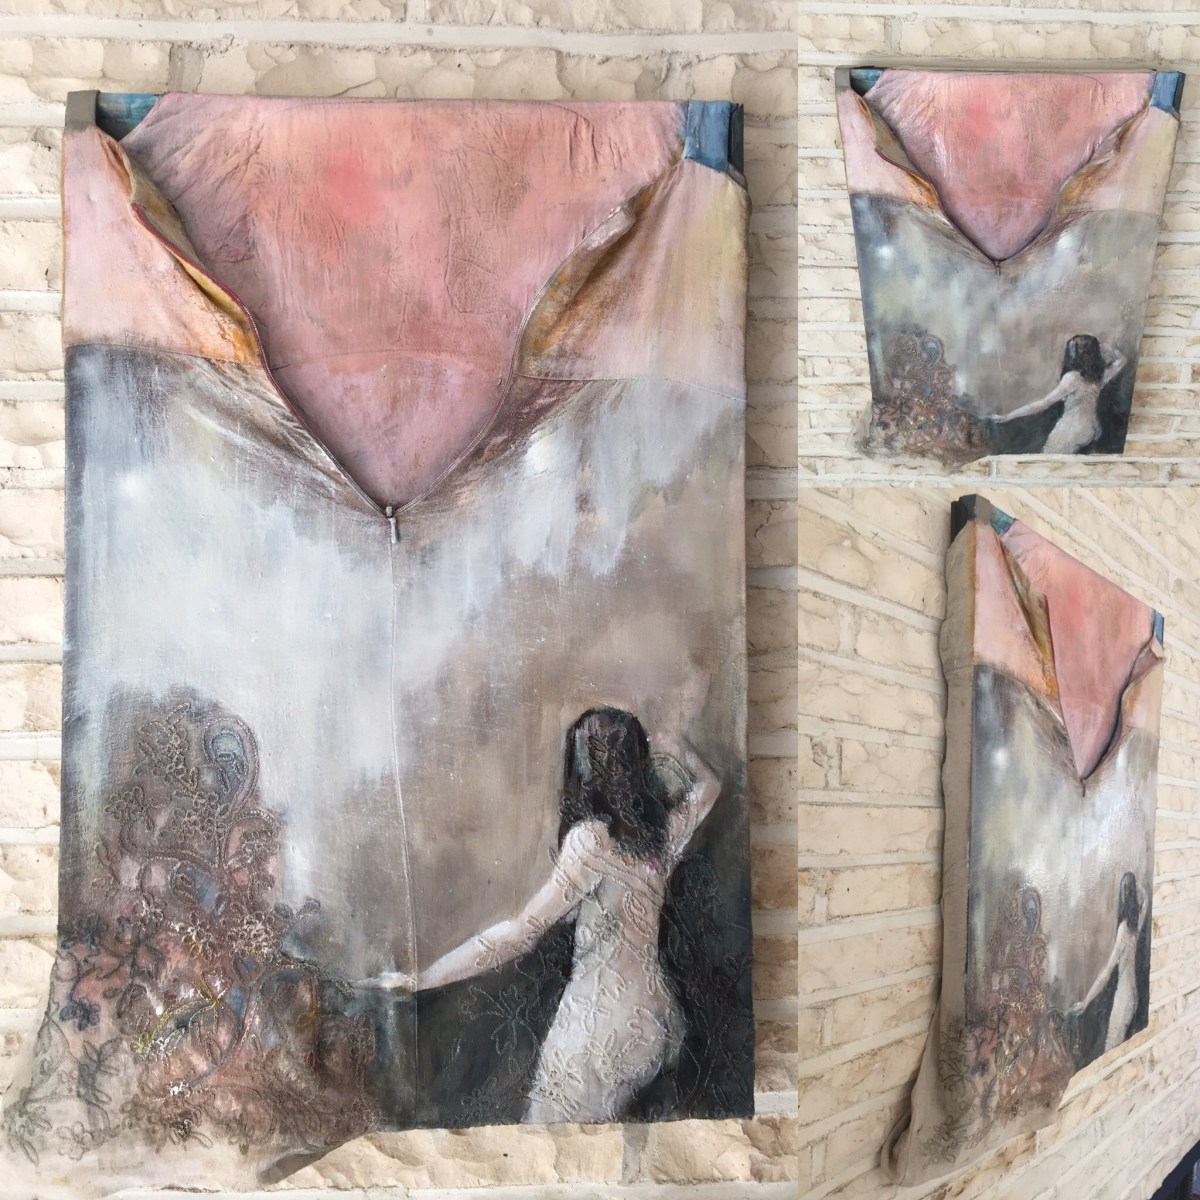 "Unzipped Linen Dress, 2018 oil / mixed media 16x24"" jodee clifford"